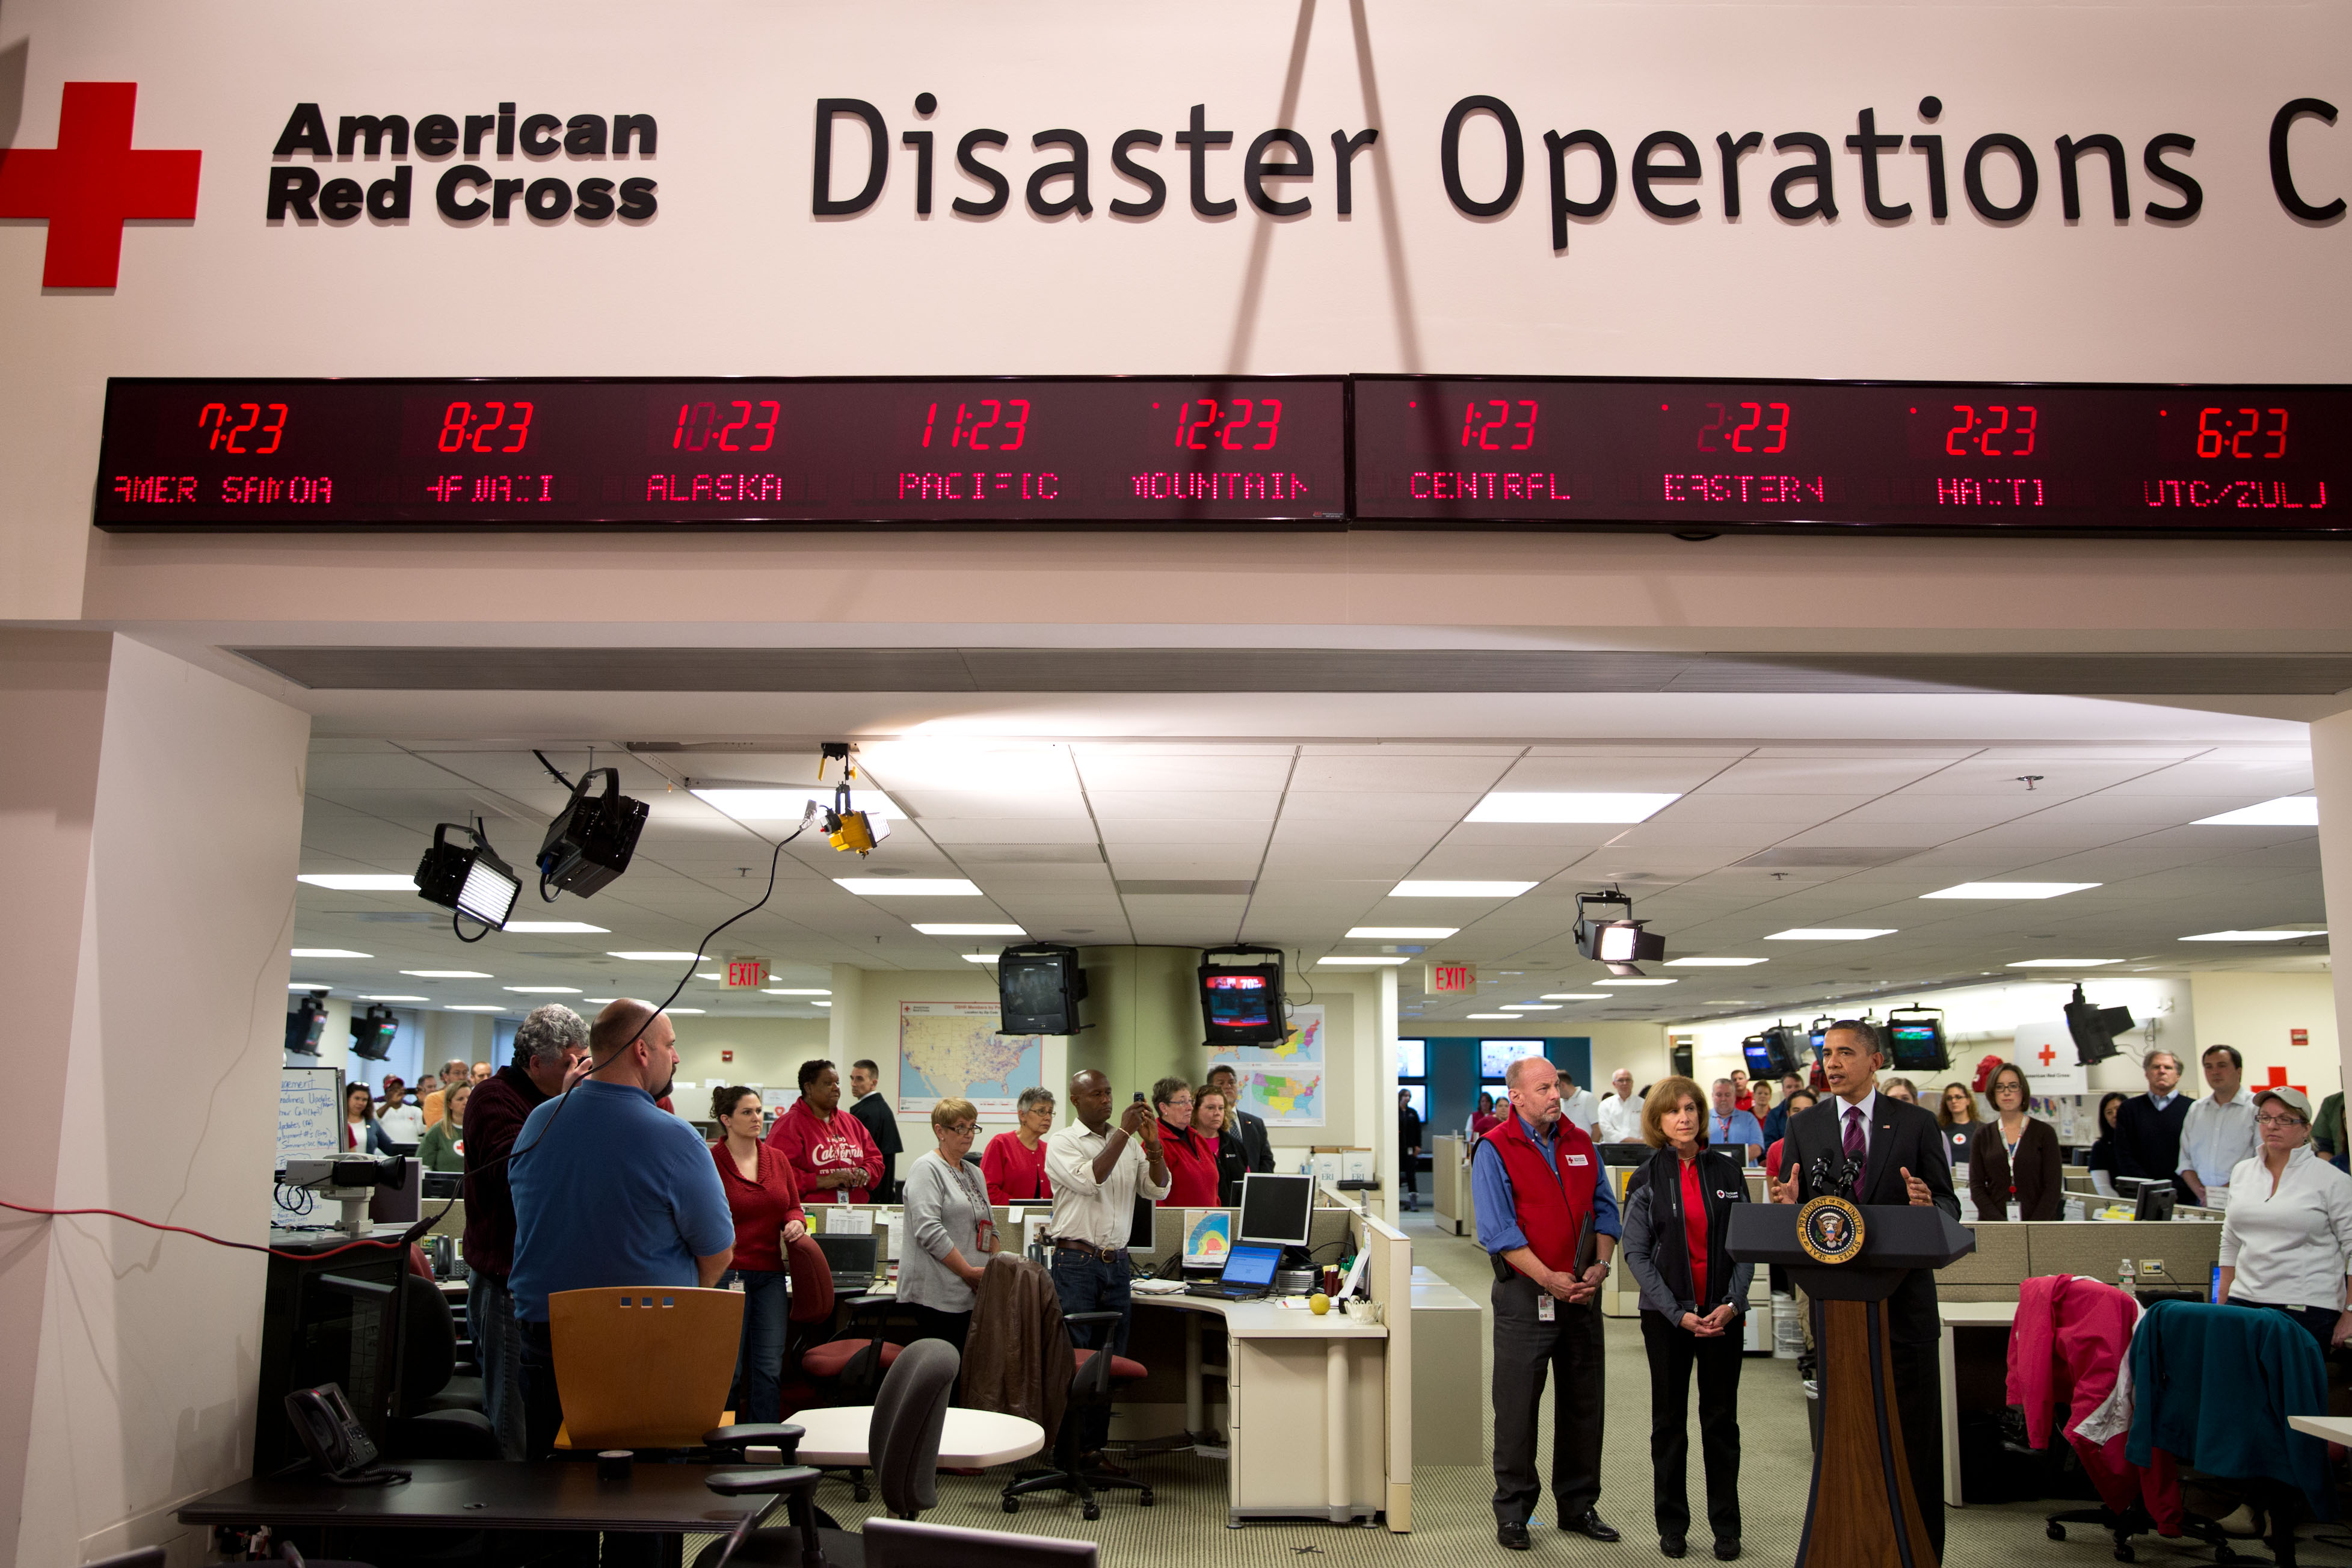 President Obama delivers remarks during his visit to the Disaster Operation Center at the Red Cross